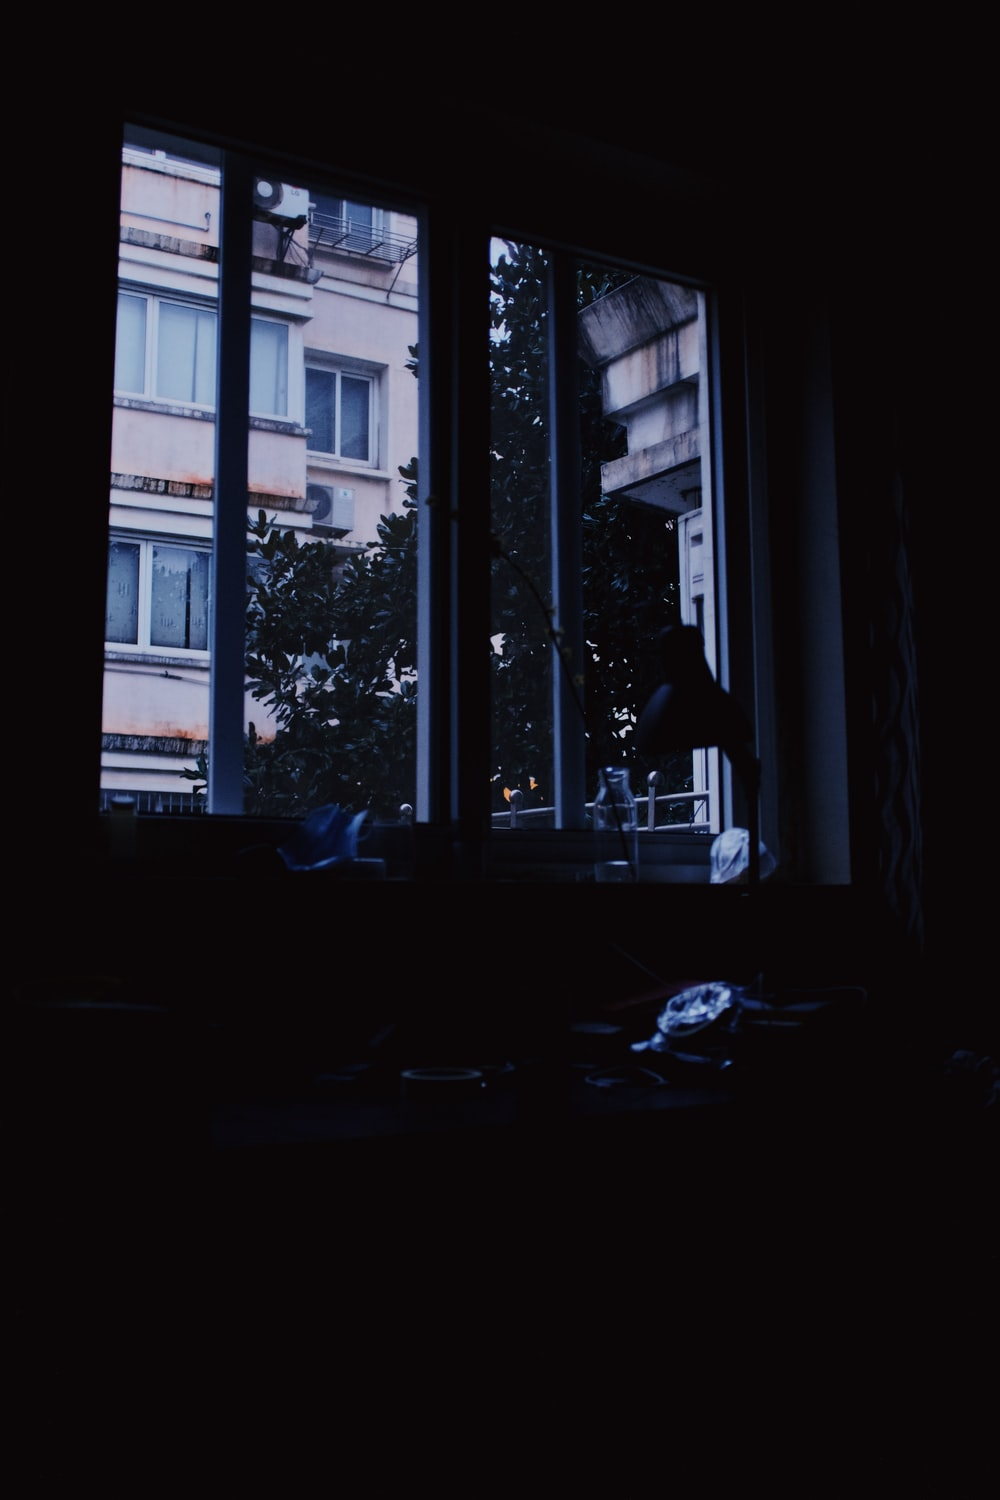 silhouette of person sitting on floor near window during daytime